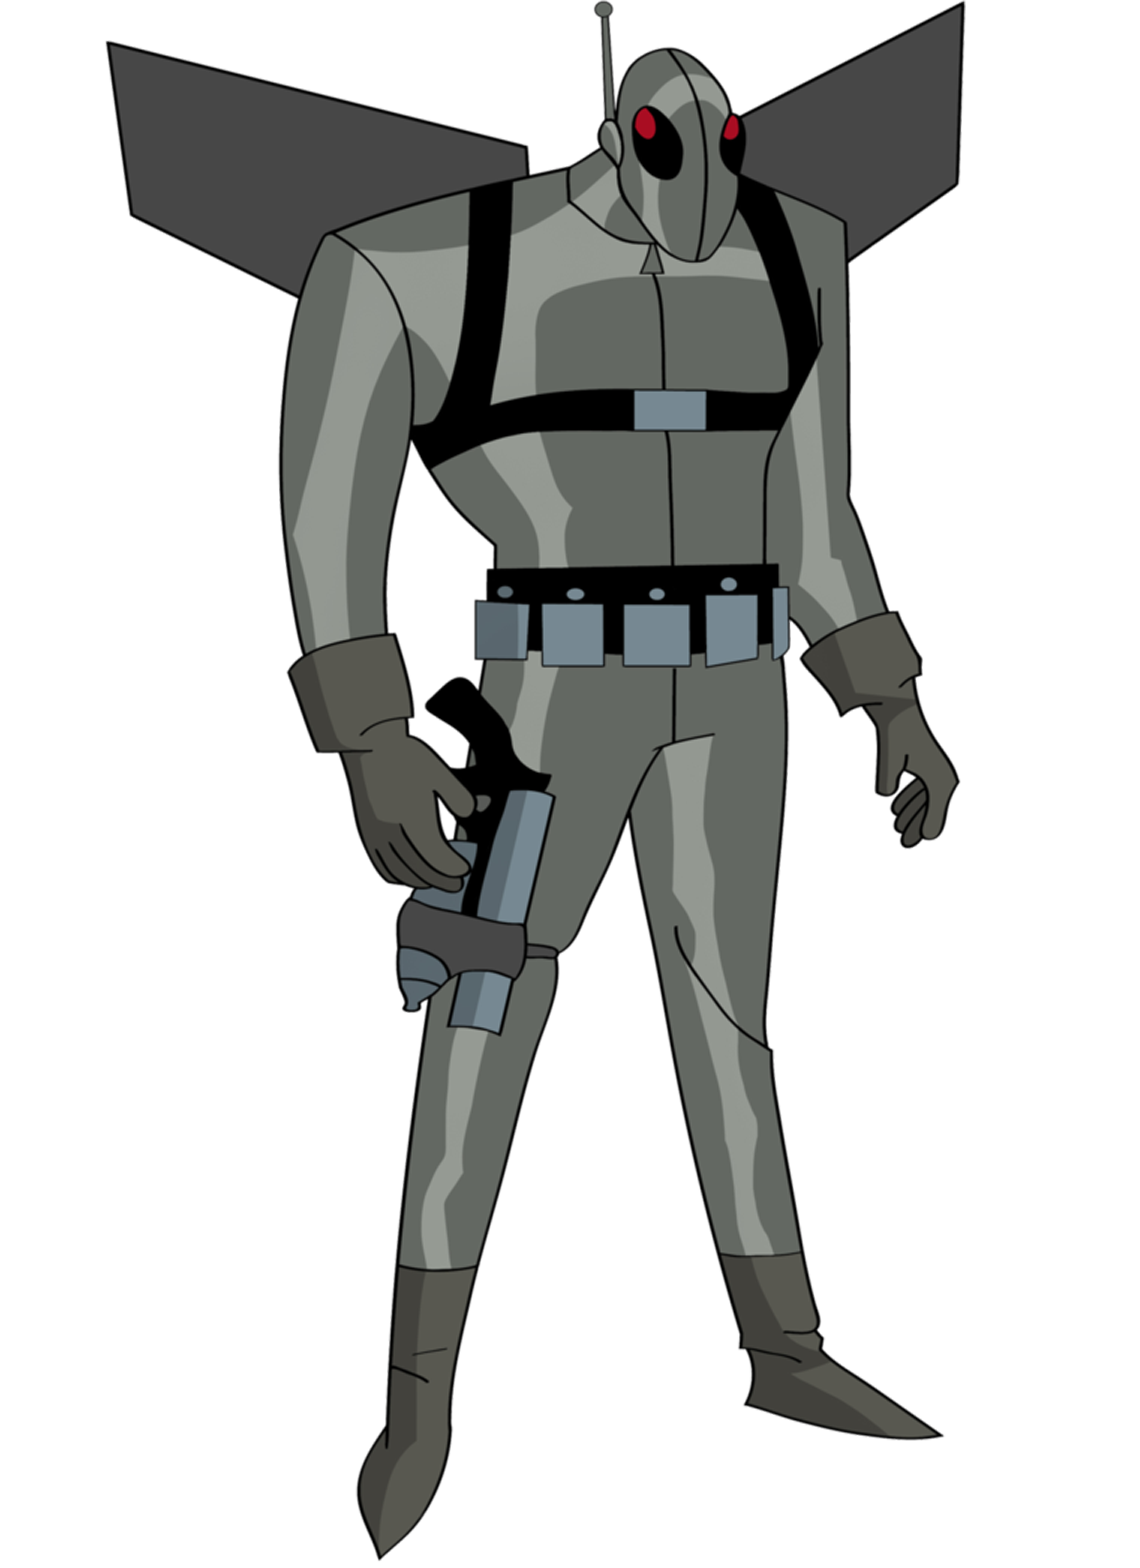 Firefly batman png. Justice league unlimited pinterest